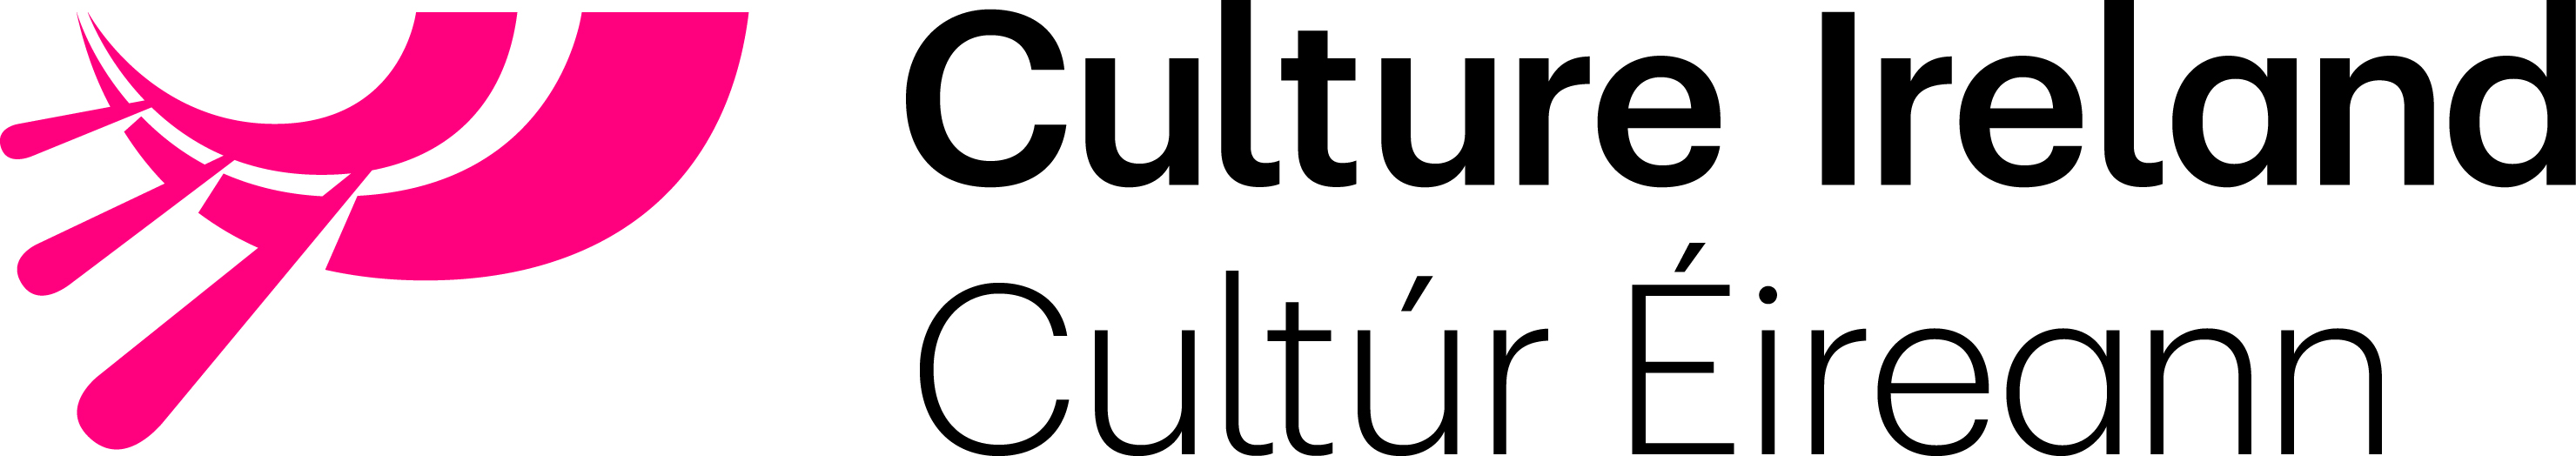 obrien.ie - Culture Ireland Logo